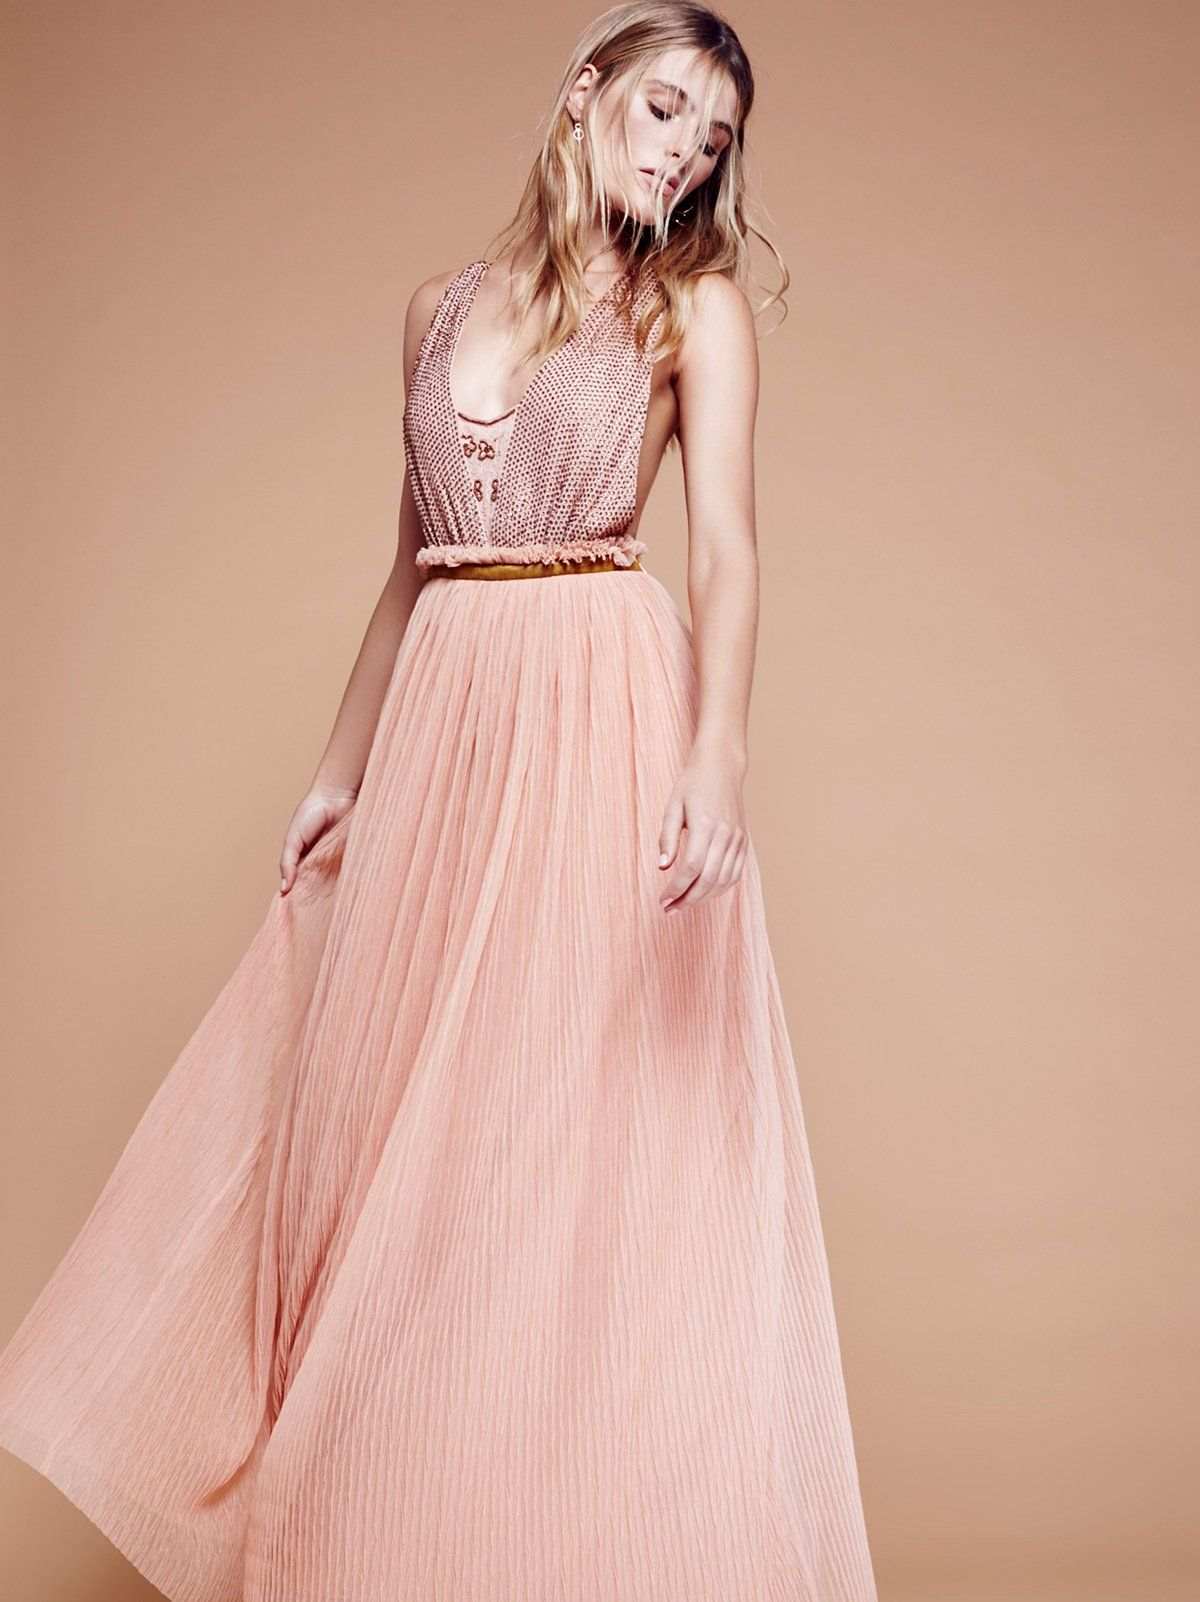 What to Wear on Valentine\'s Day? 20 Lovely Date-Night Outfit Ideas ...